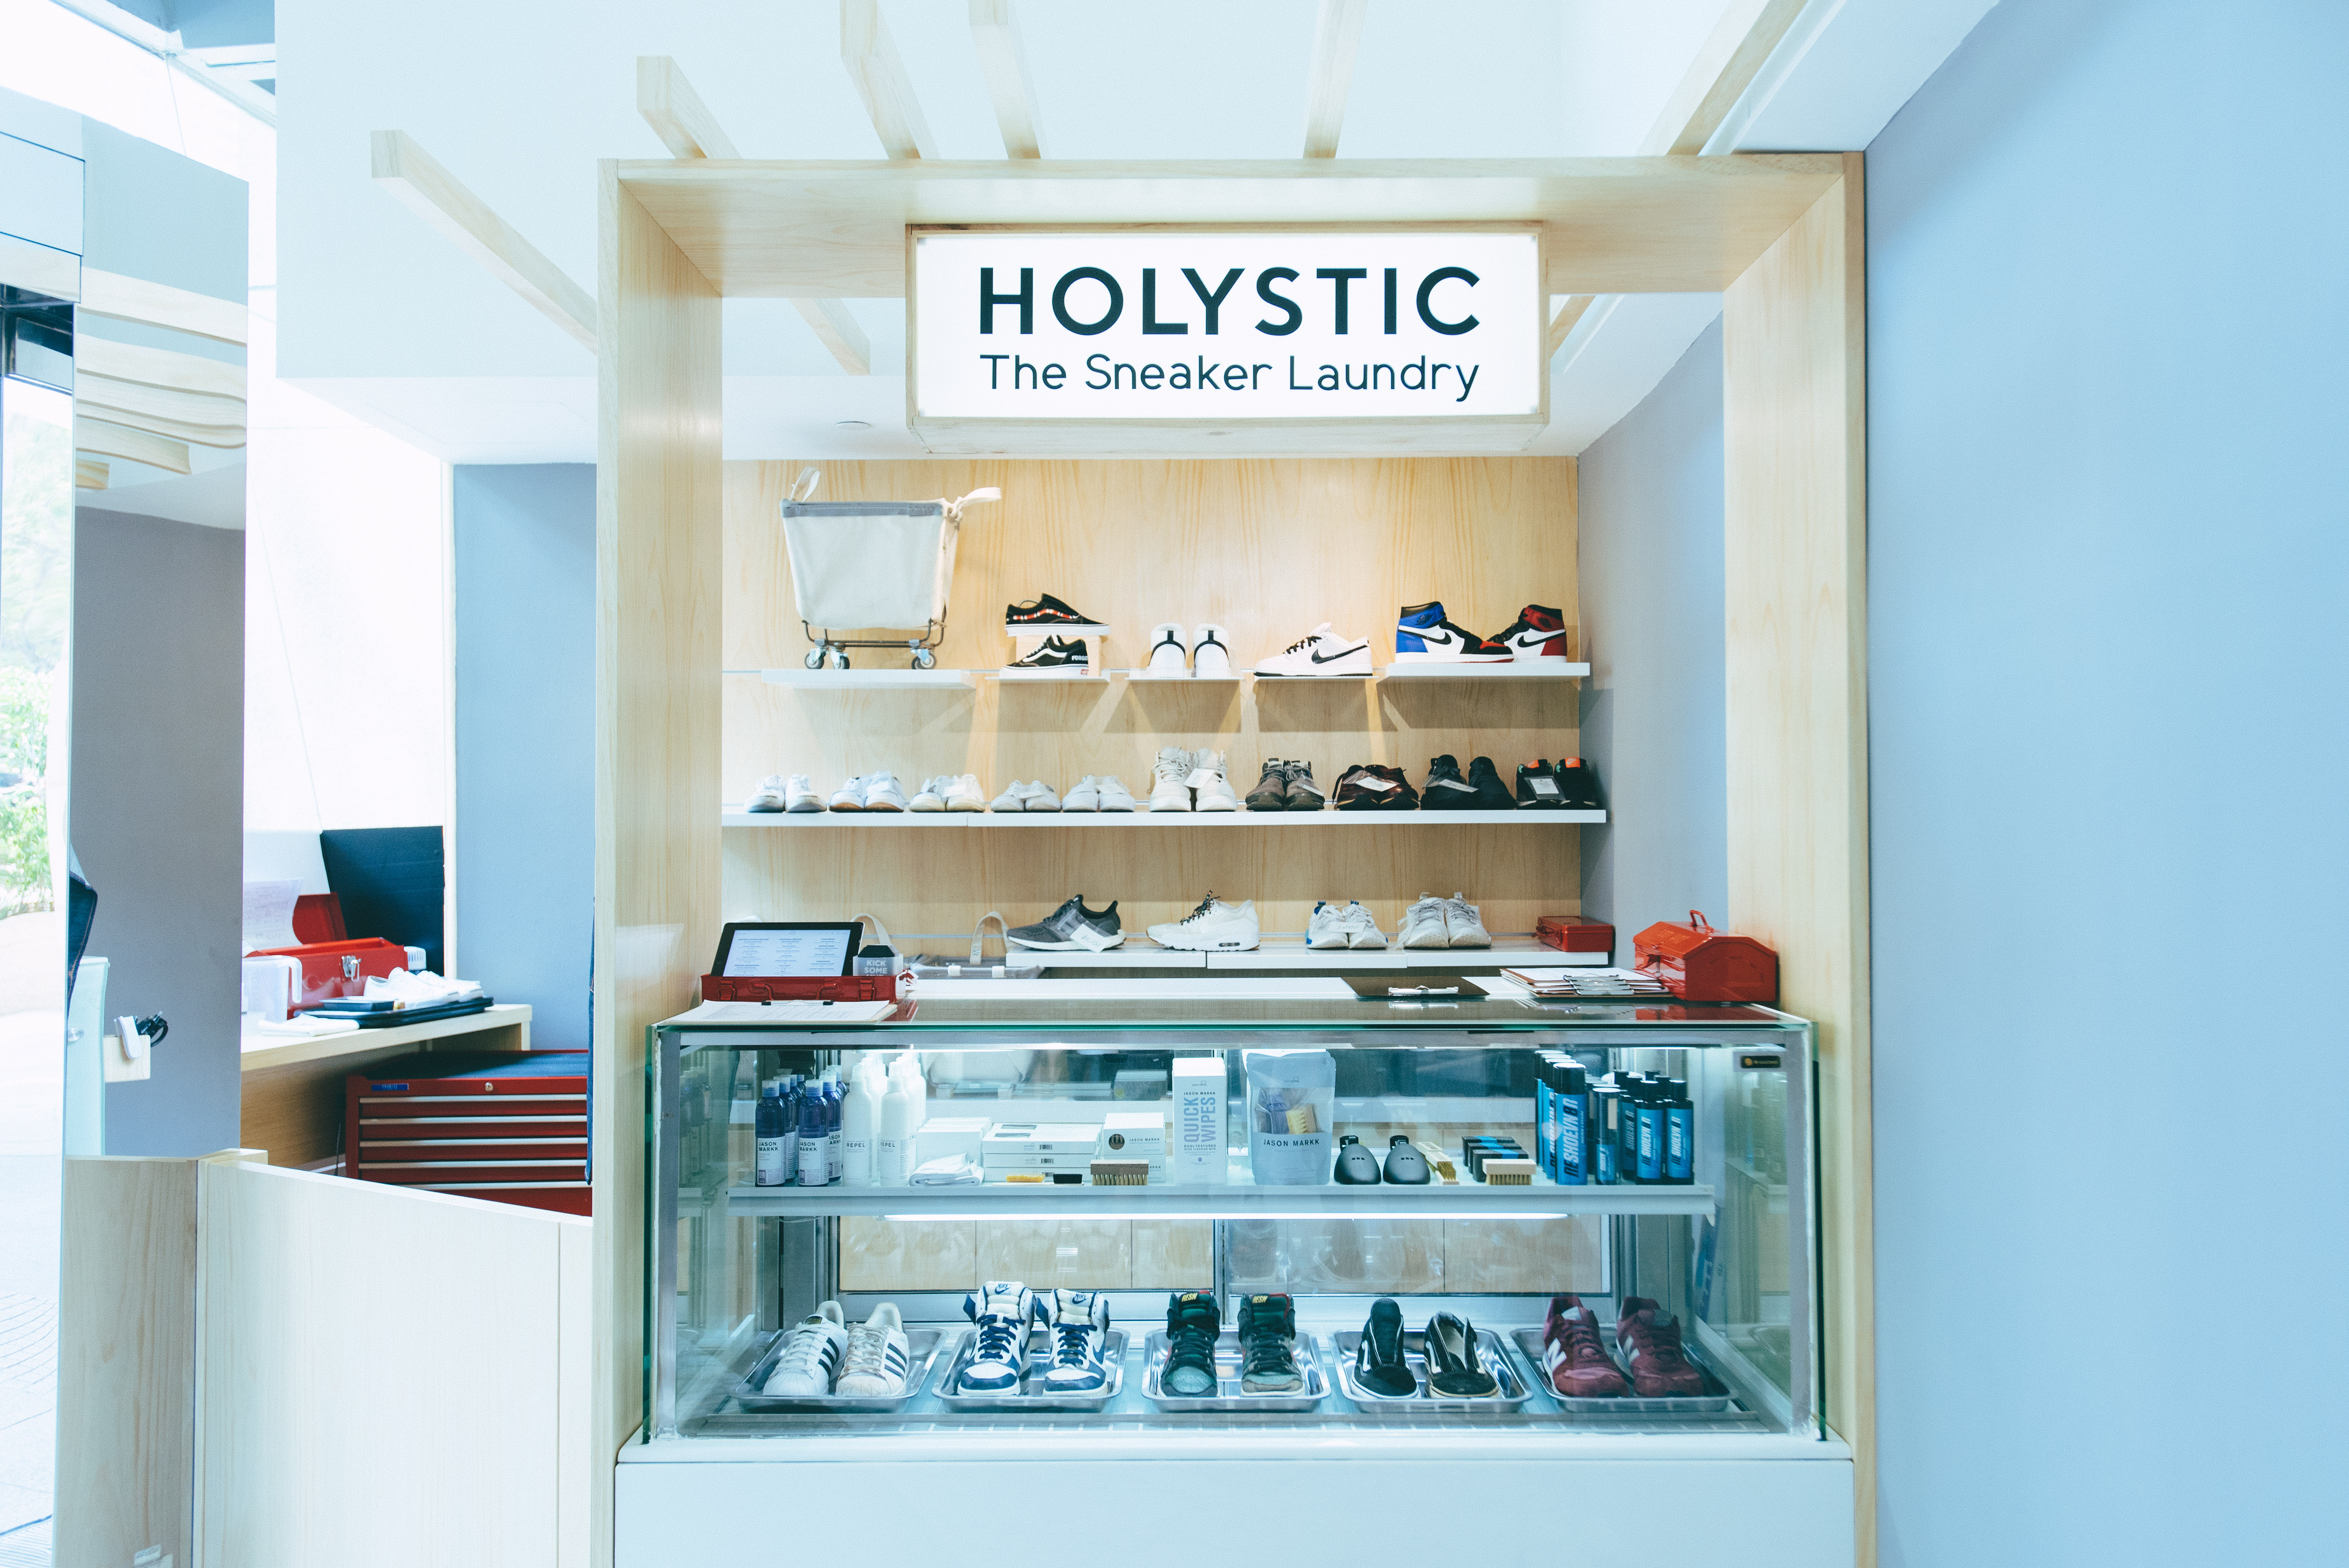 Holystic is a full service laundry for